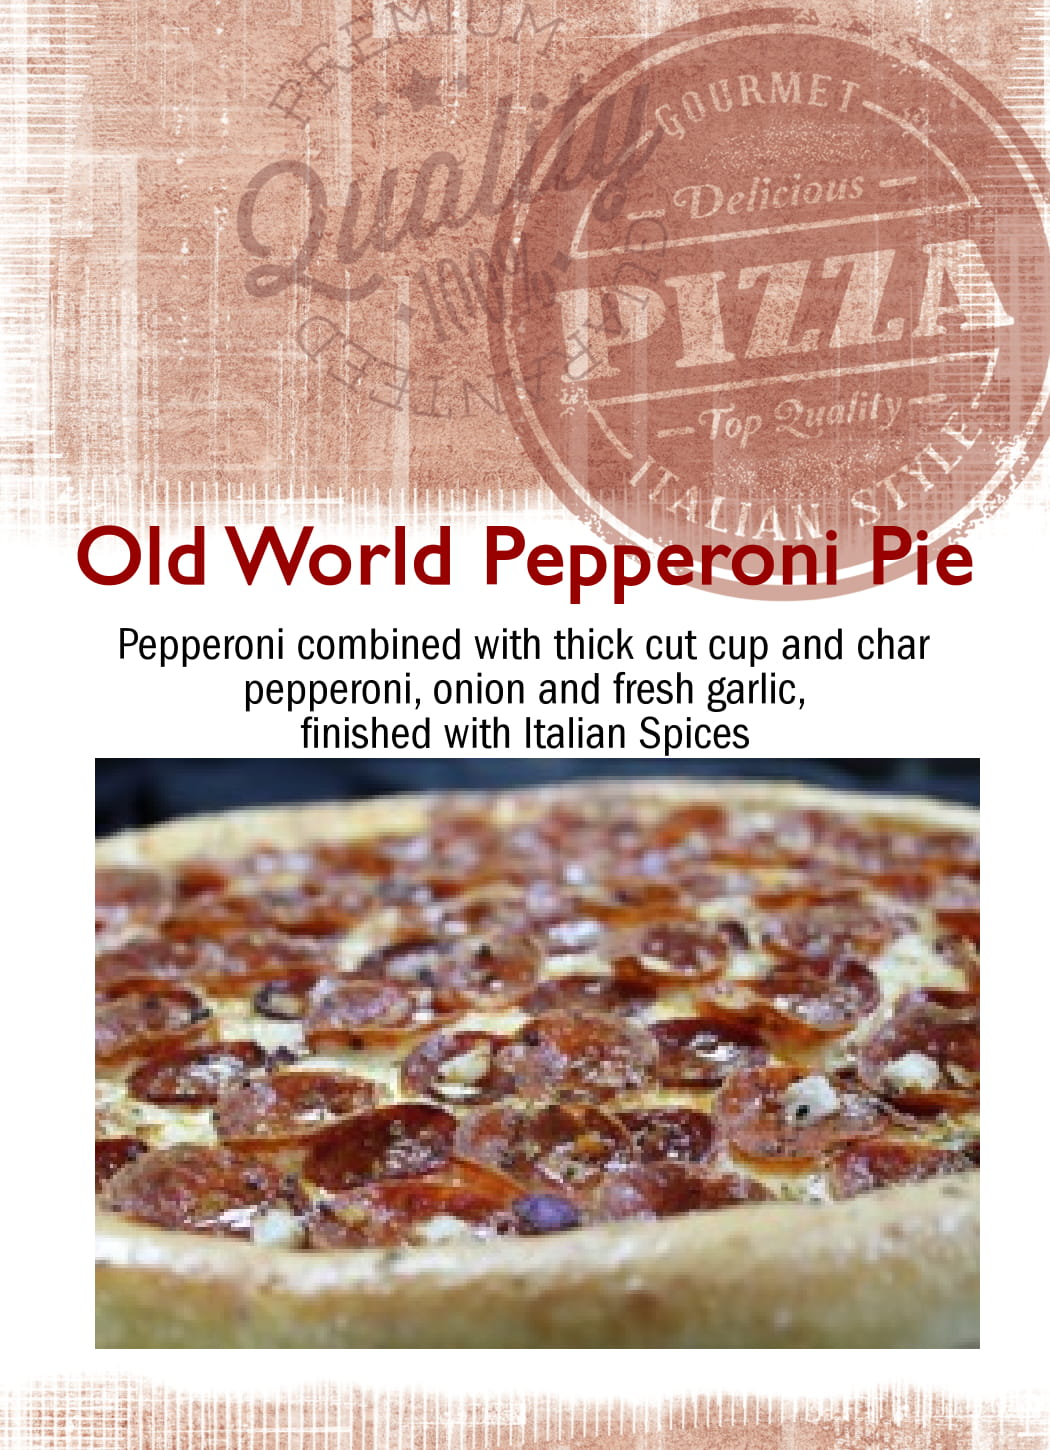 Old world pepperoni pie. Pepperoni combined with thick cut cup and char pepperoni, onion and fresh garlic, finished with italian spices